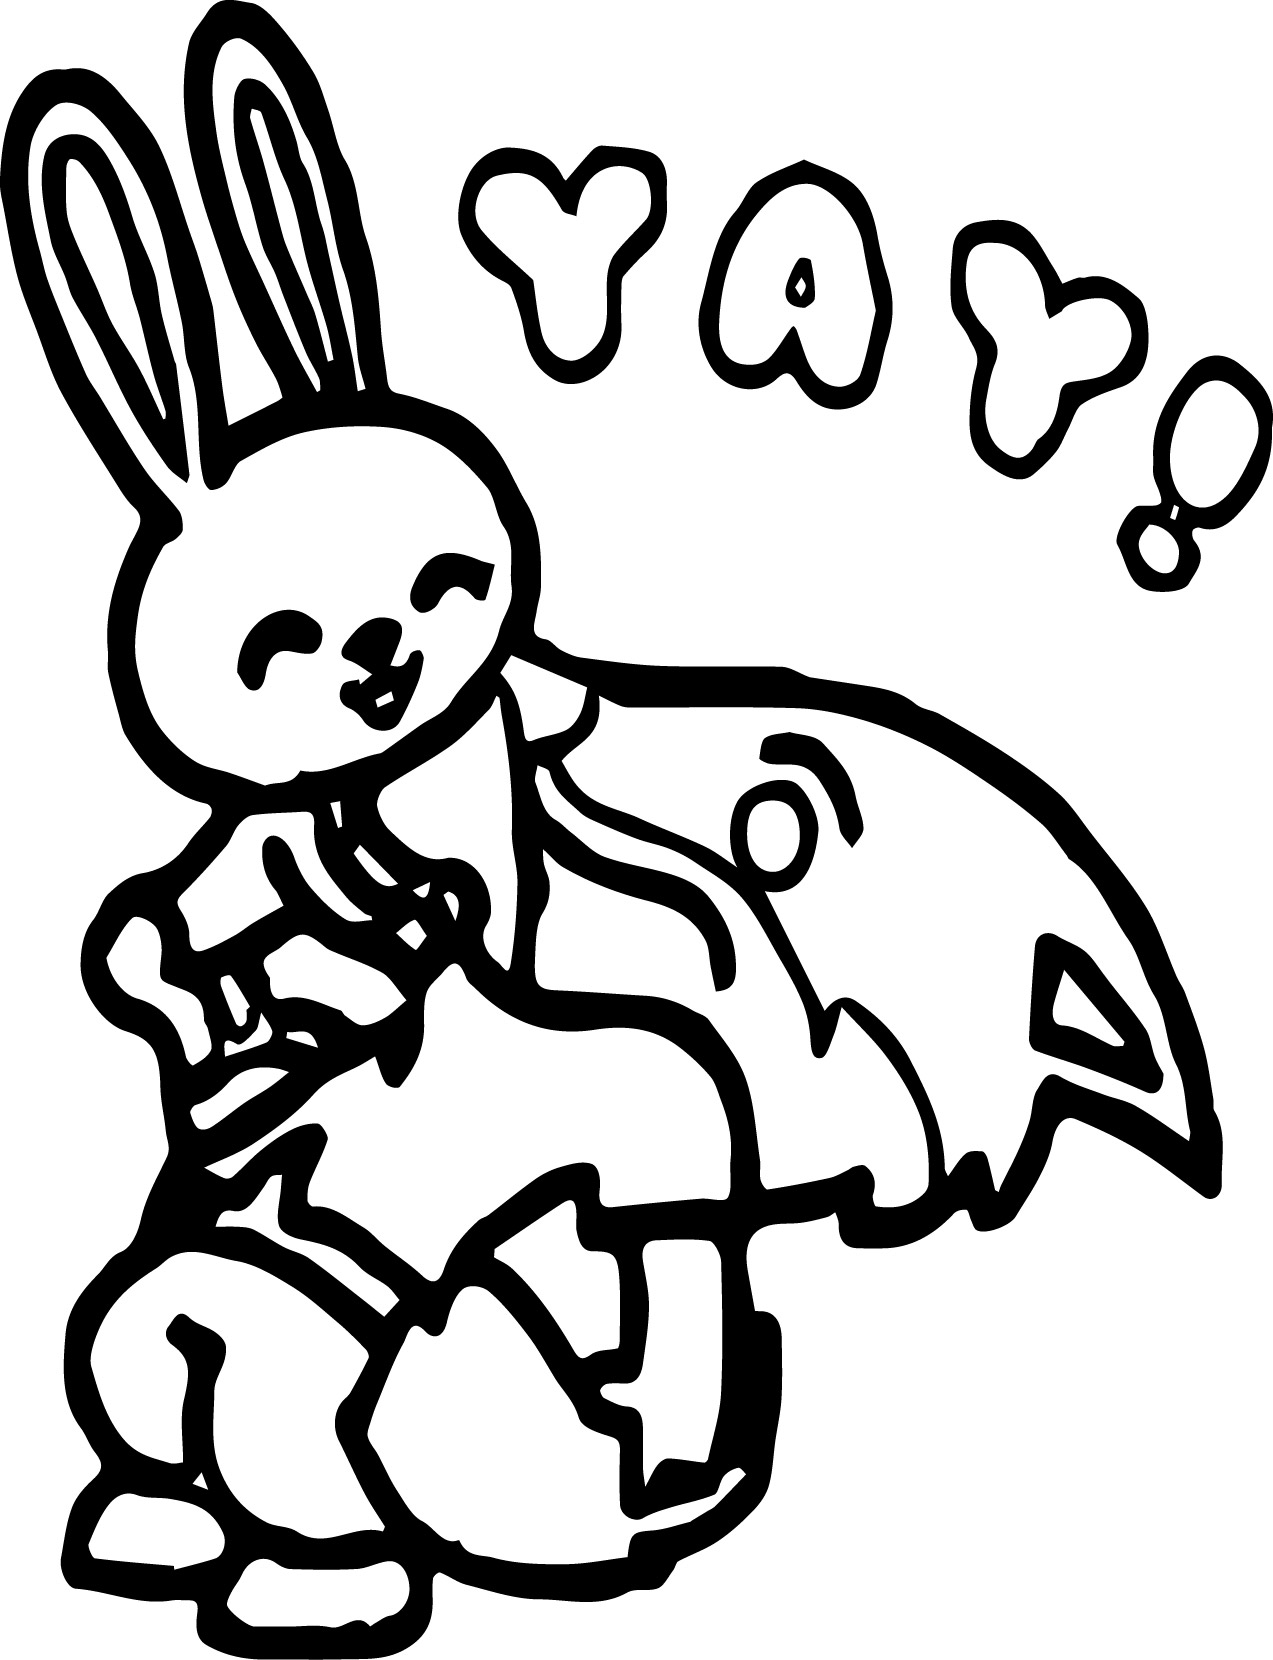 1273x1660 Coloring Pages Kids Judy Hopps Nick Wilde Yay Zootopia Basic